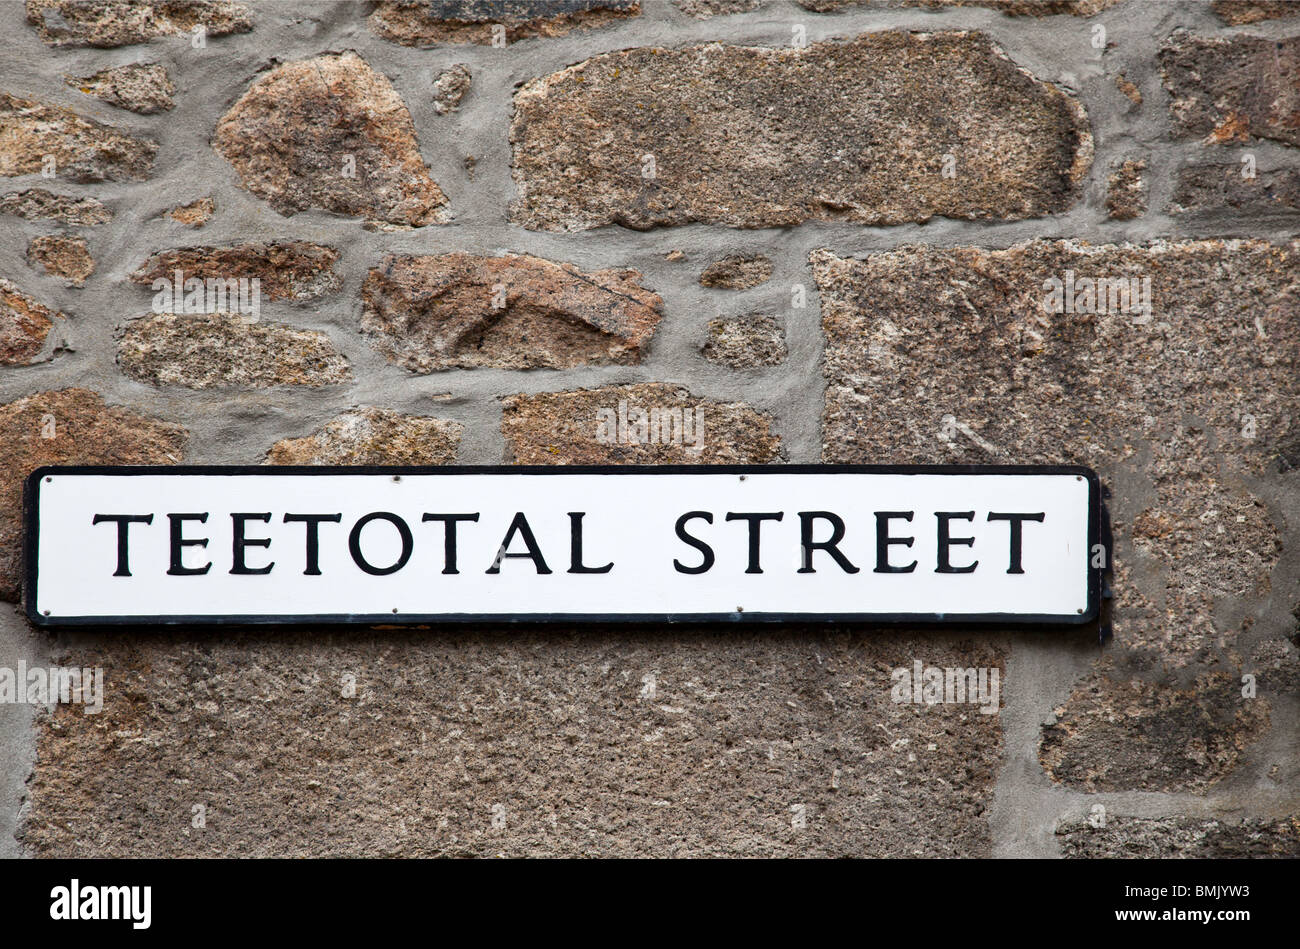 Teetotal Street Sign - Stock Image